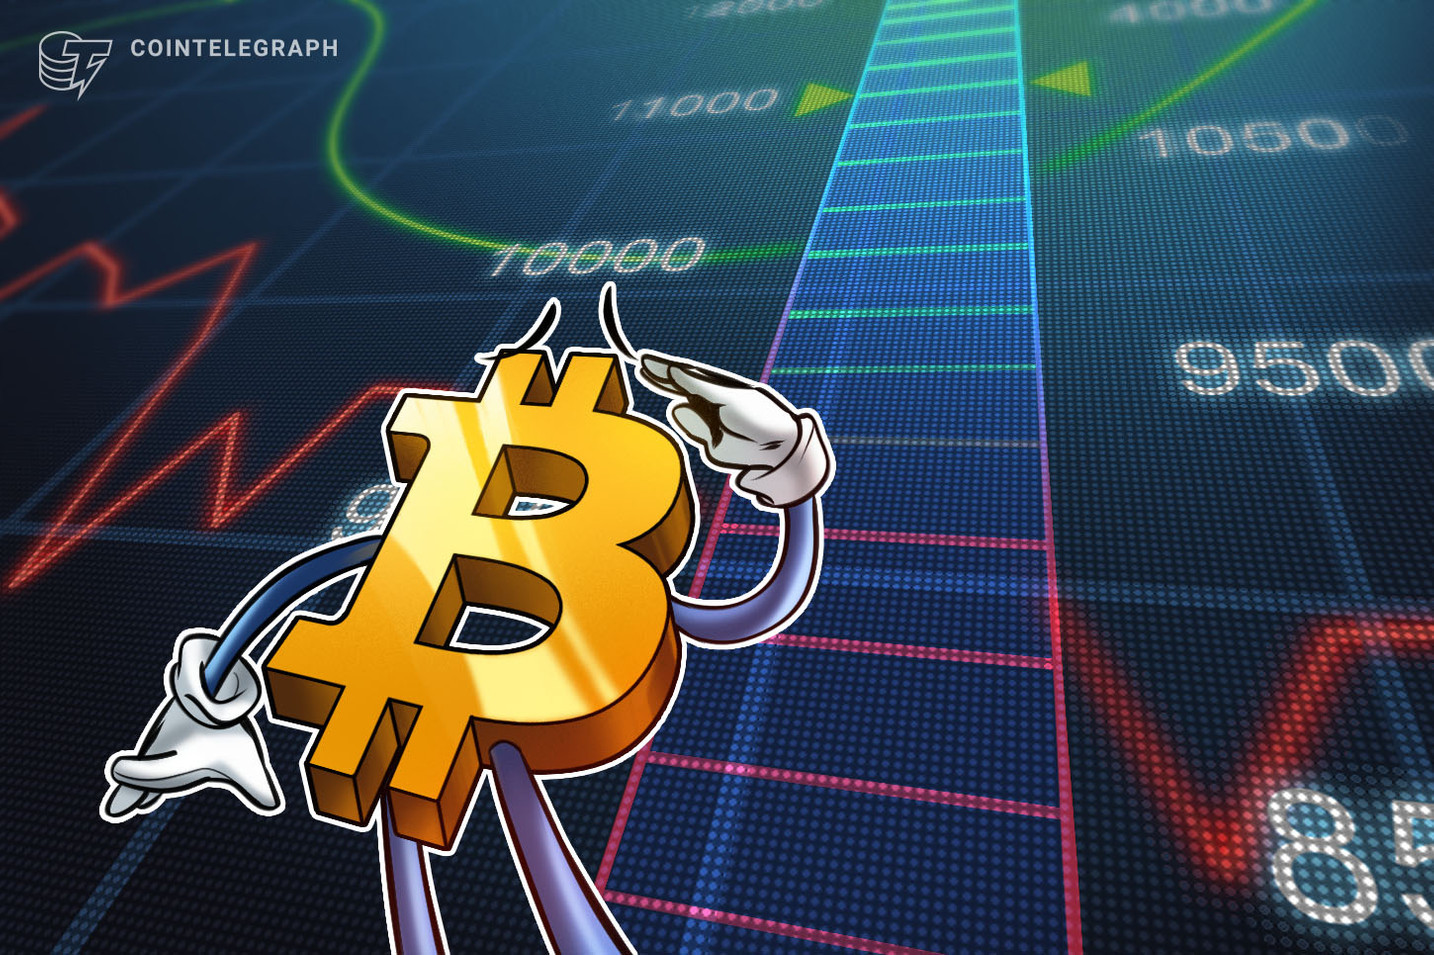 3 Reasons Why Bloomberg Calling Bitcoin a 'Resting Bull' Is Inaccurate